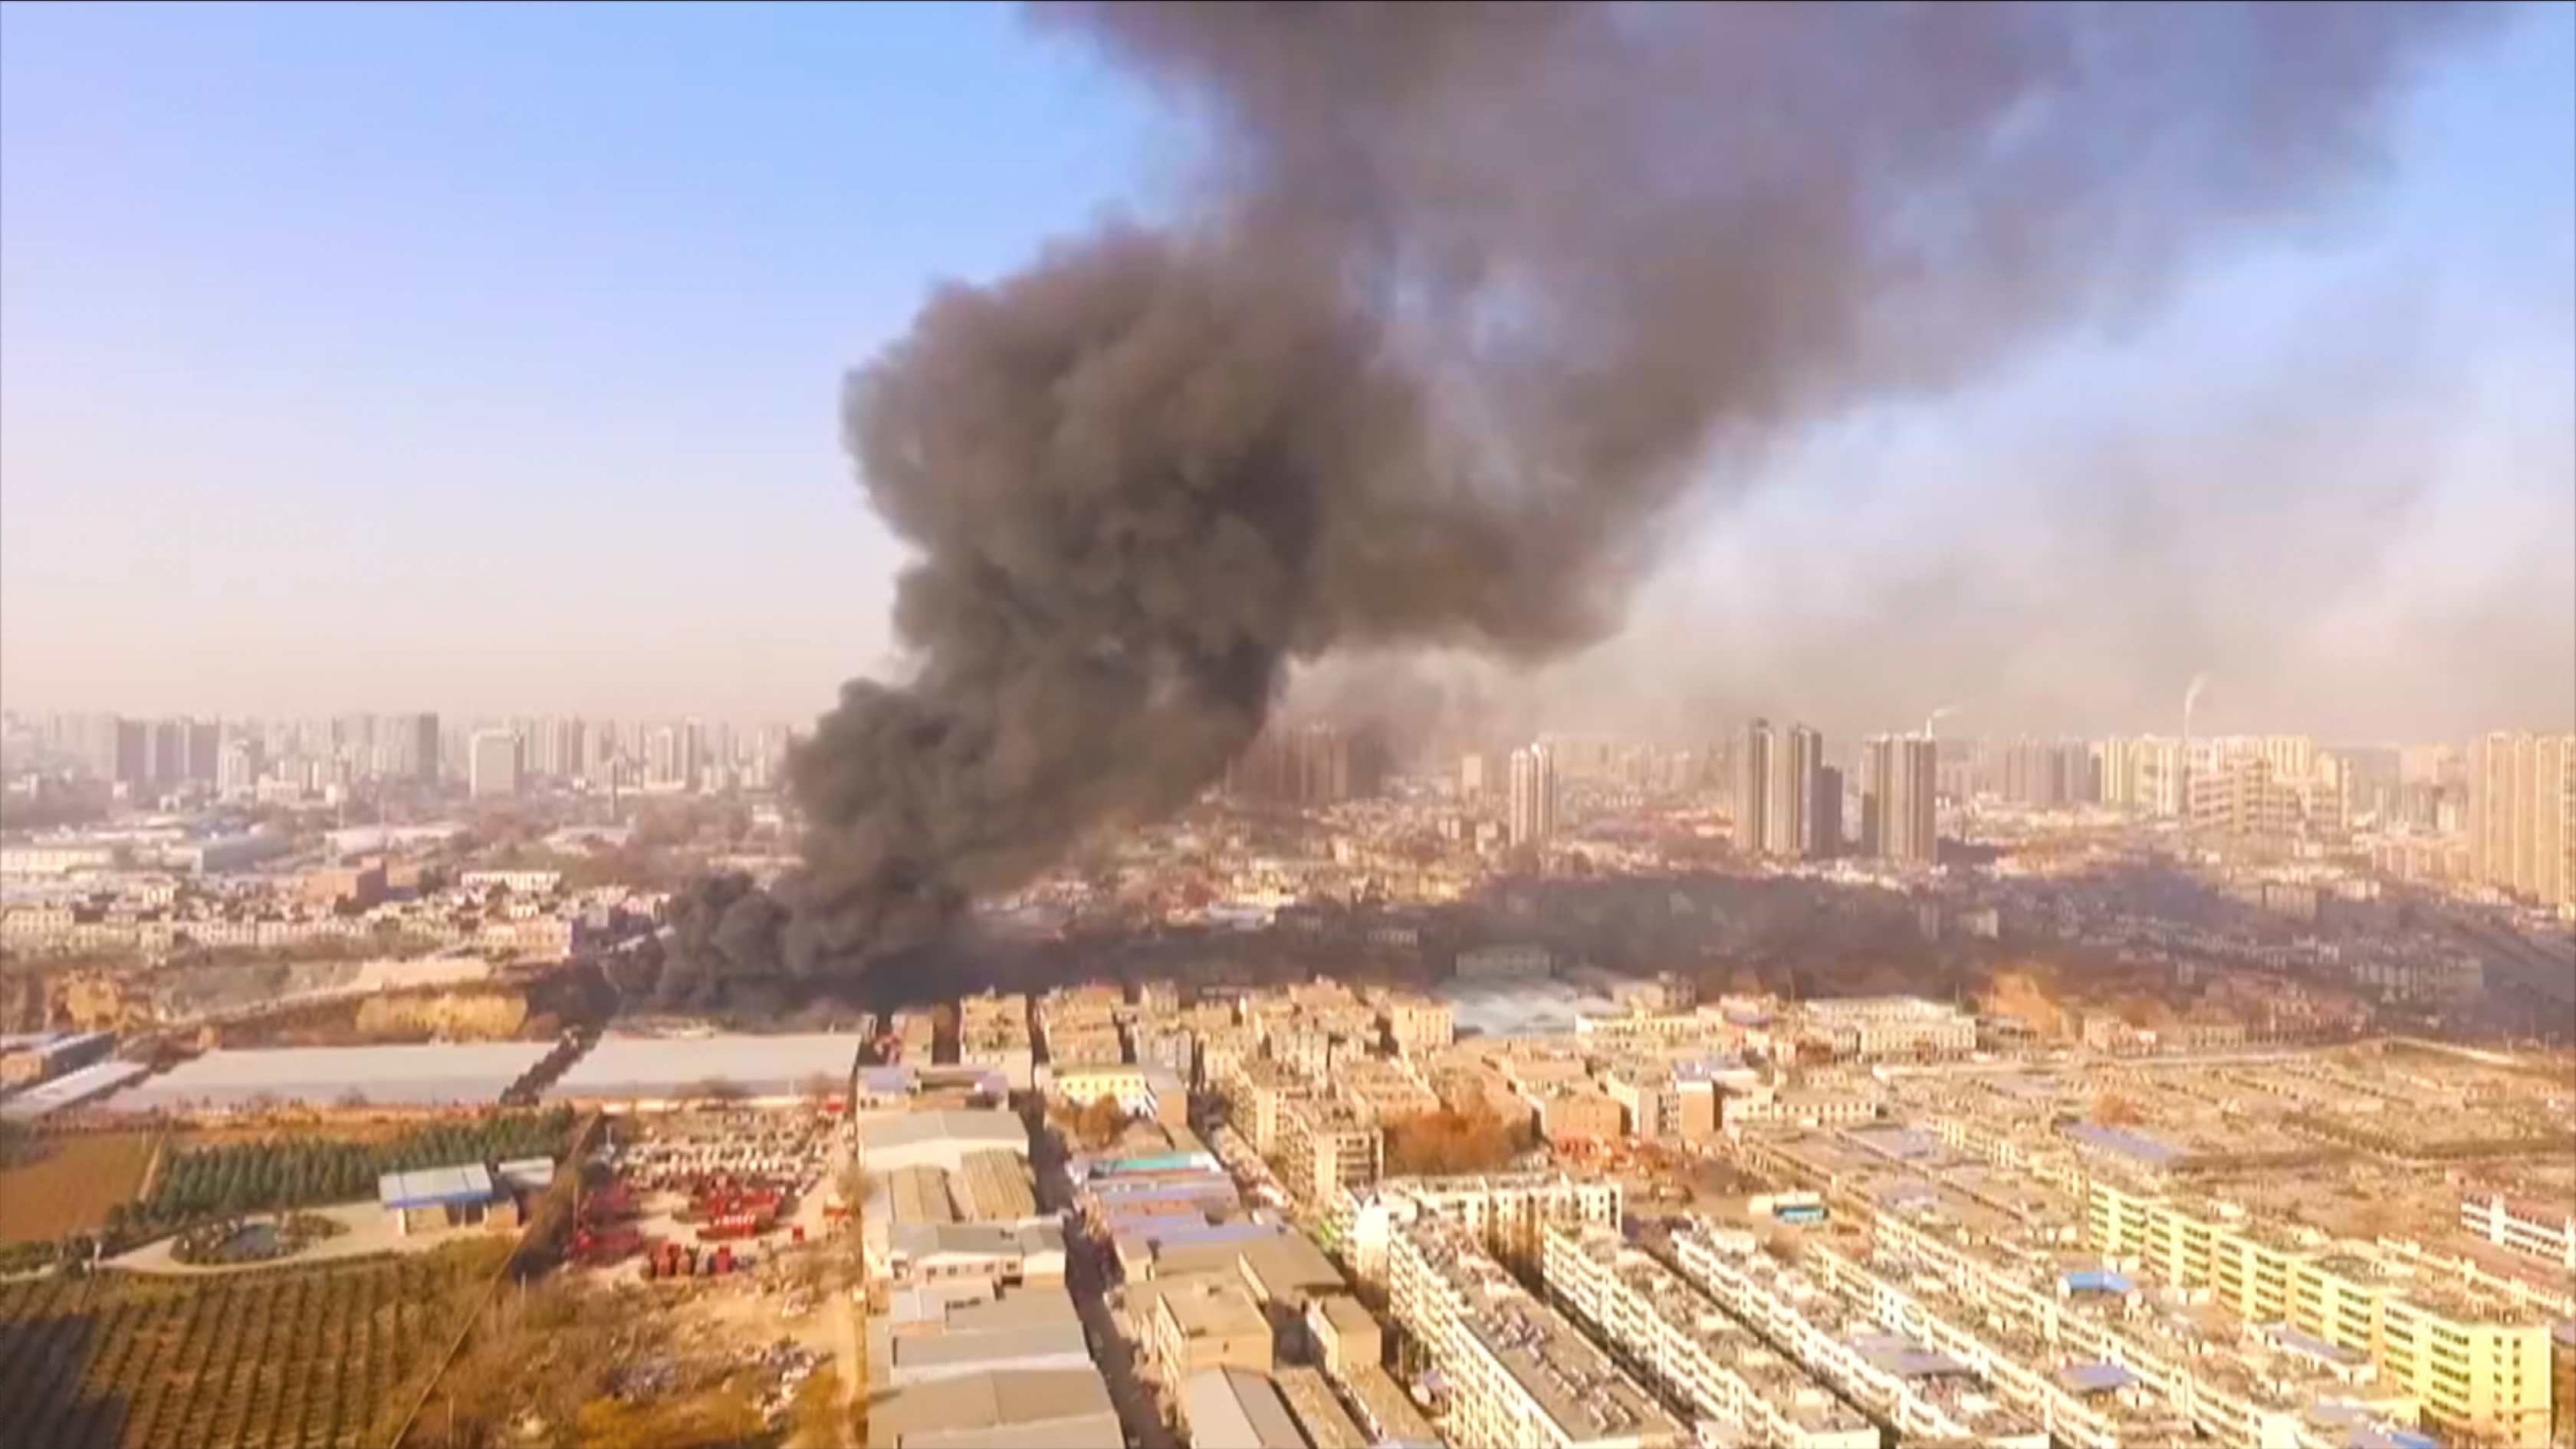 A Fire Broke Out Inside A Furniture Market Warehouse In The City Of